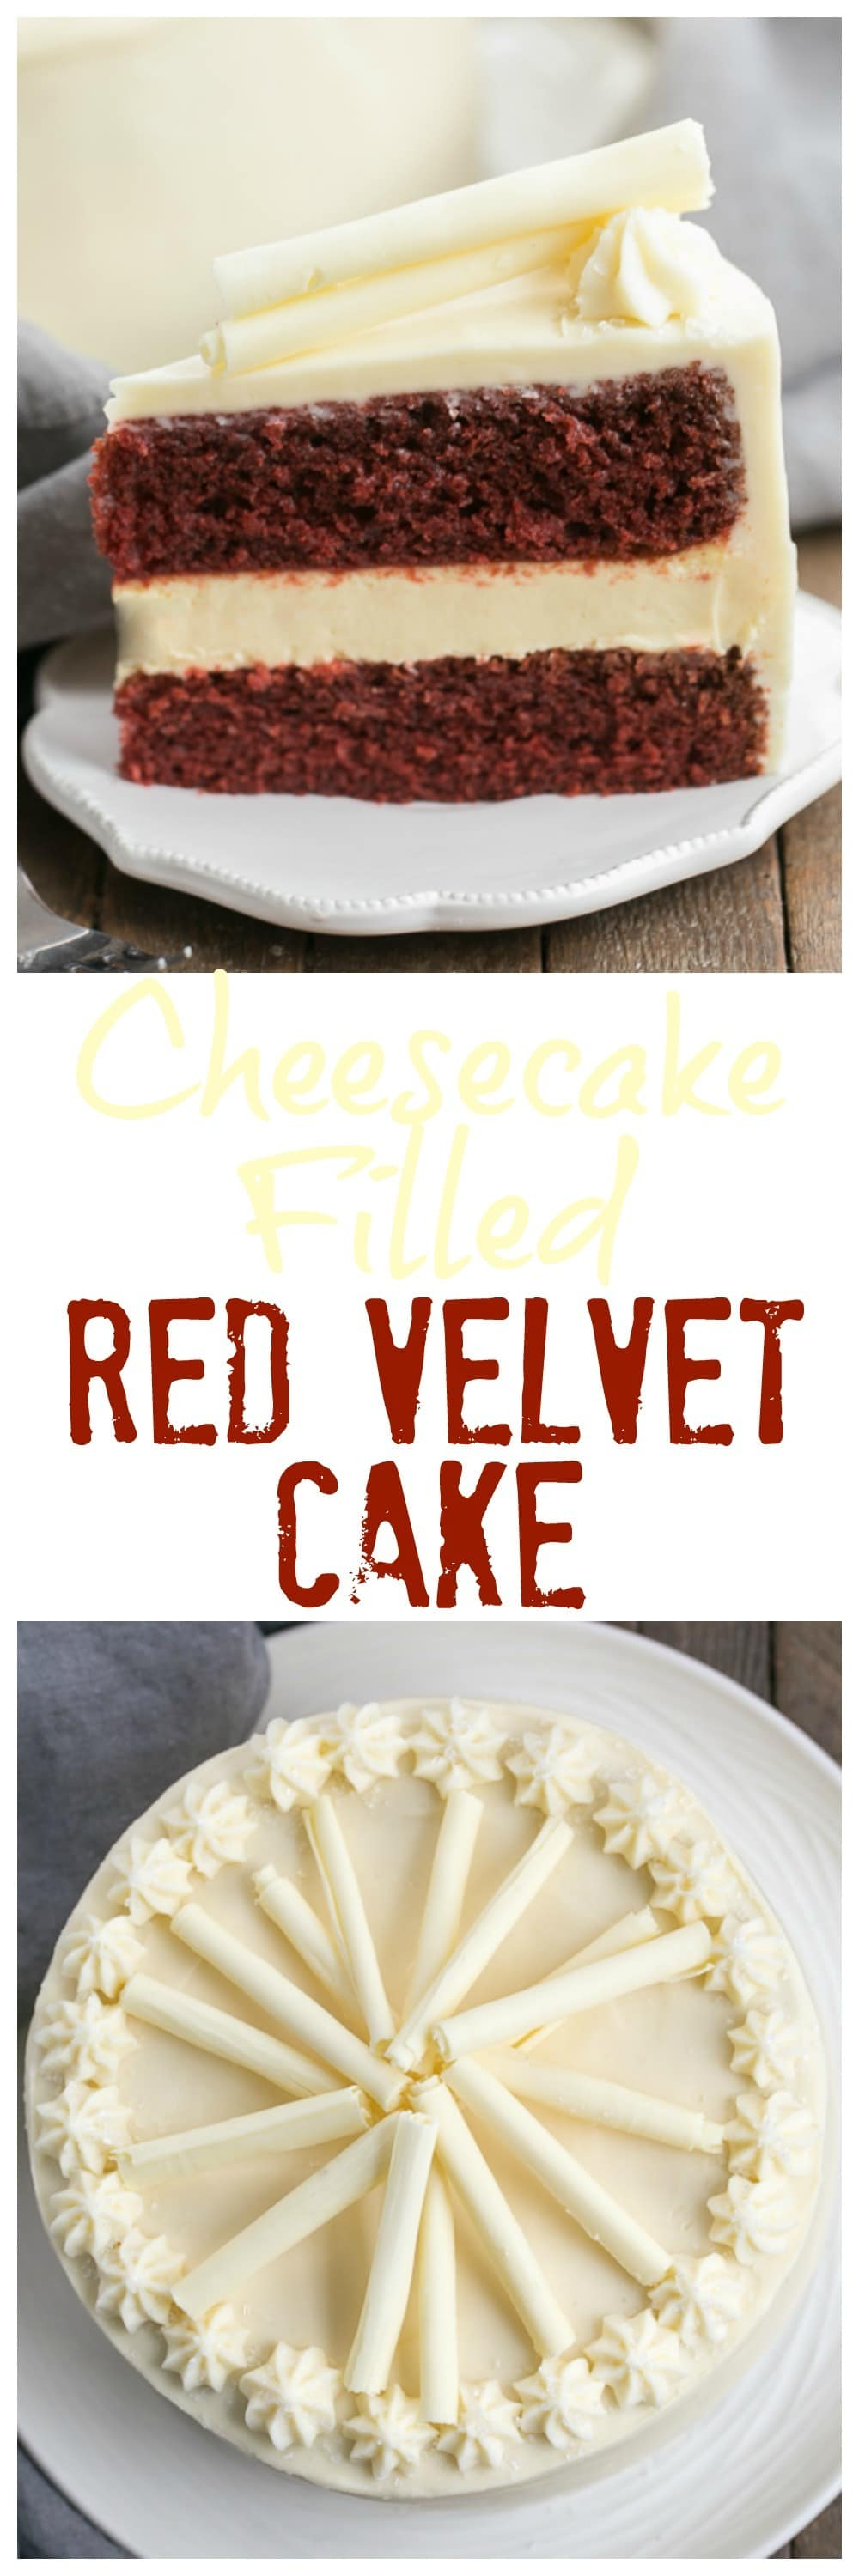 Calories In Red Velvet Cake No Frosting